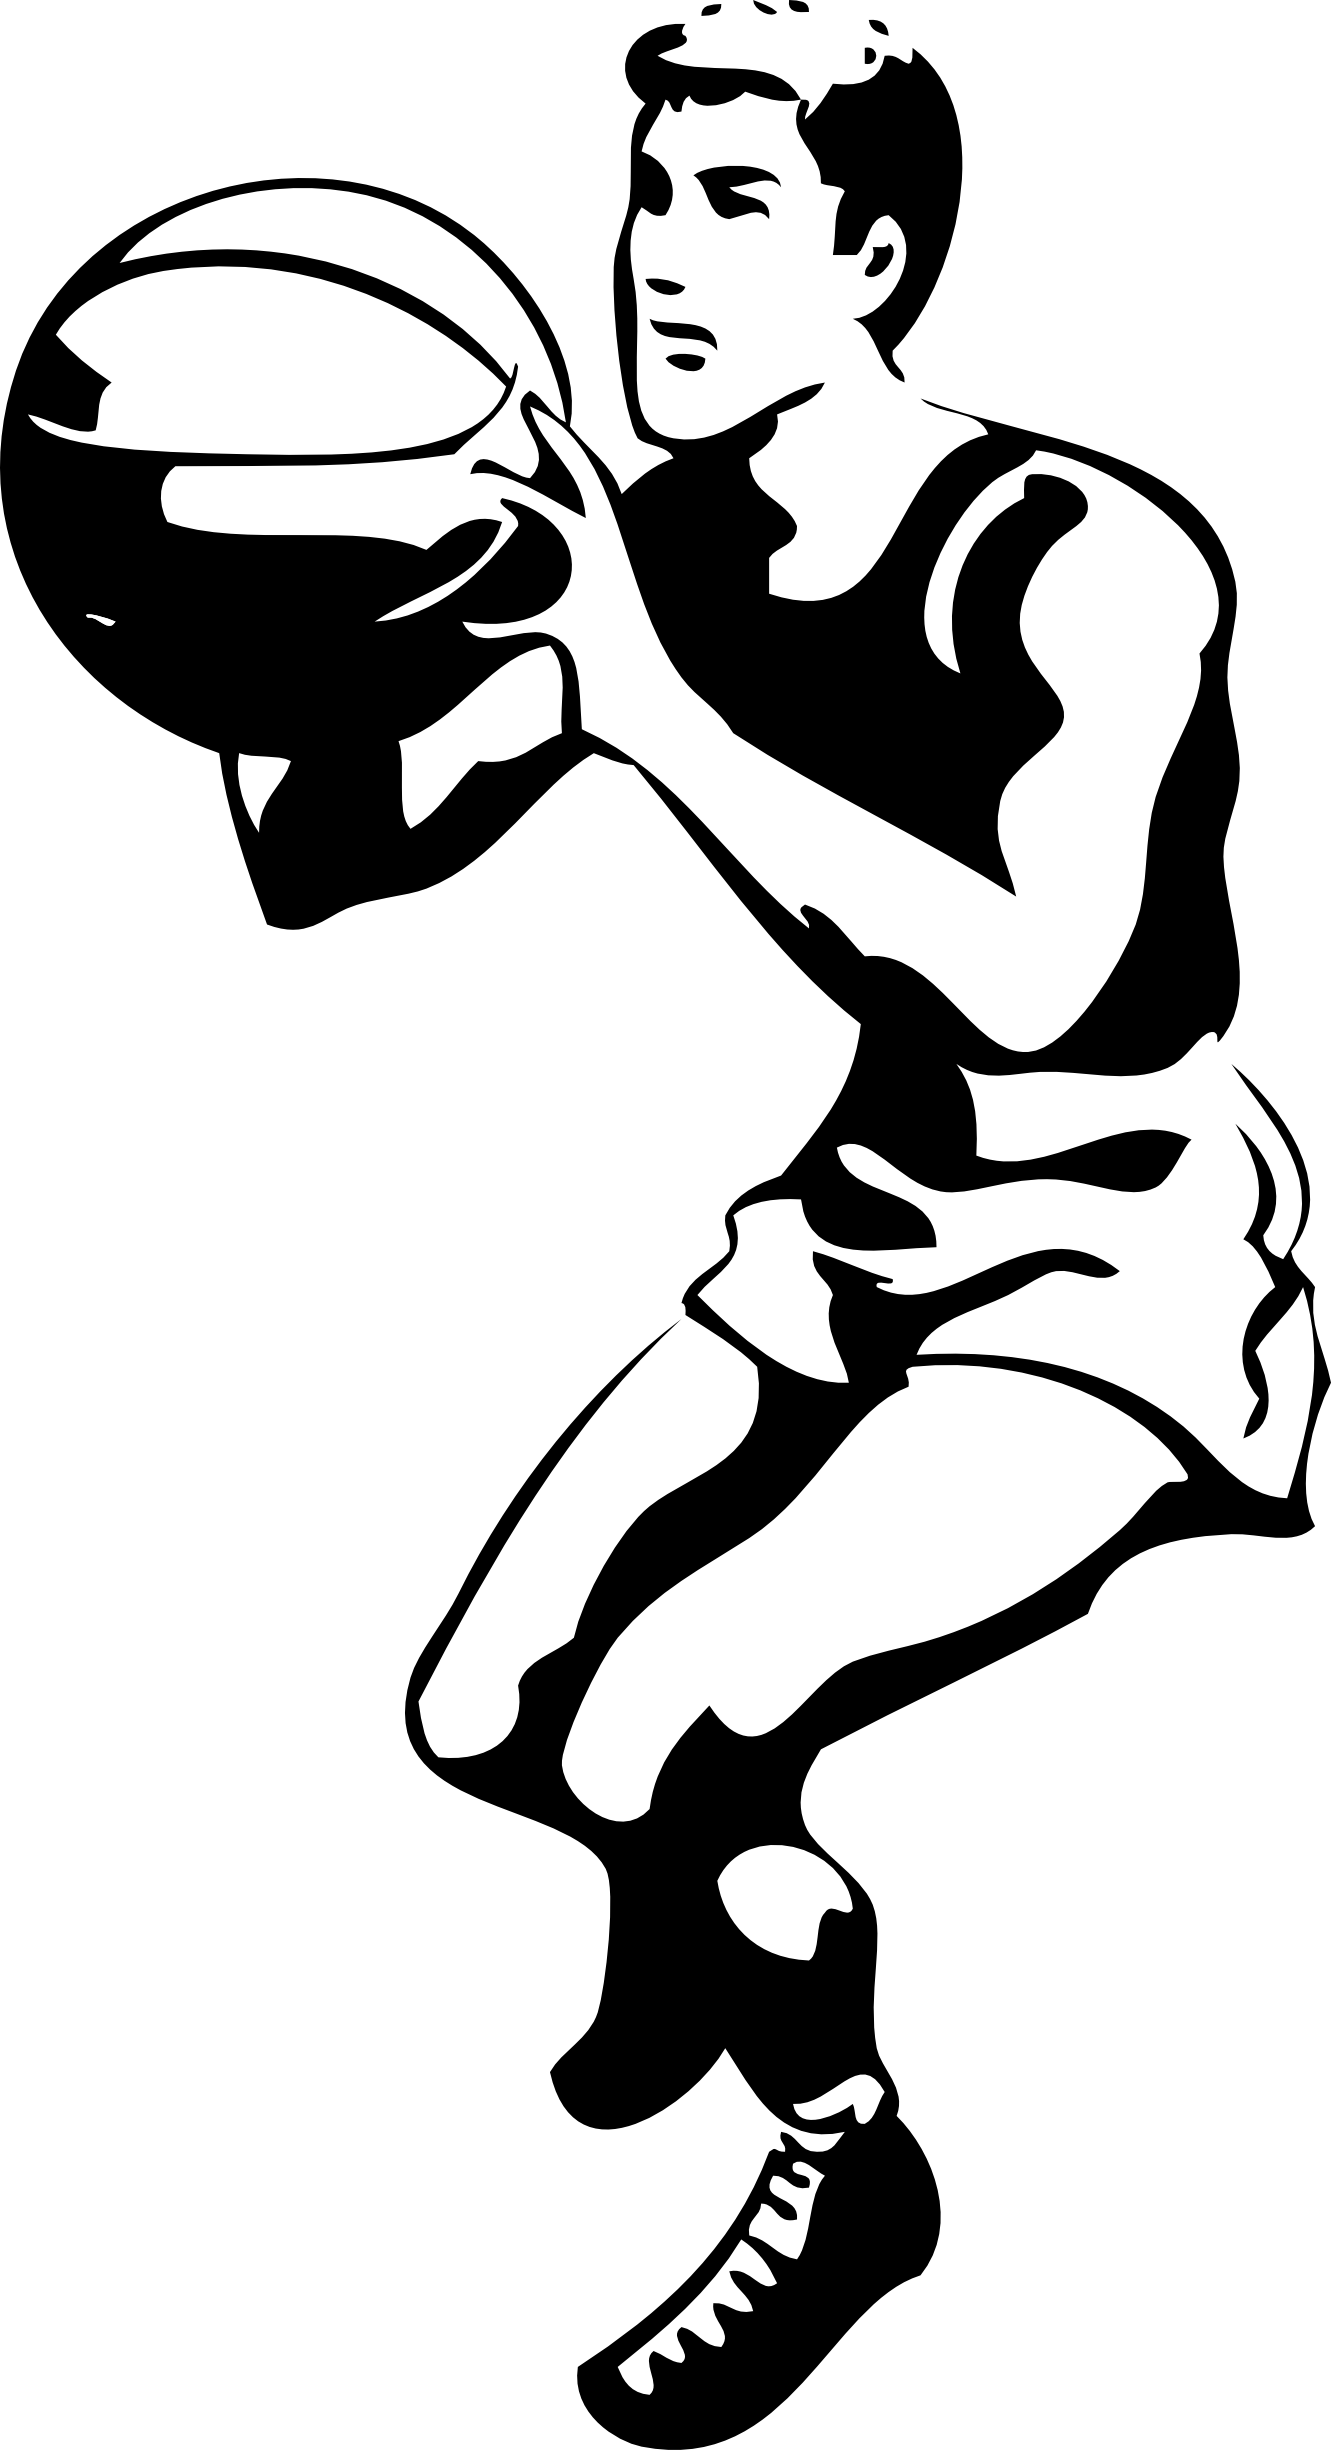 Girls and boys playing basketball clipart black and white Basketball Player Clipart Black And White | Clipart Panda - Free ... black and white